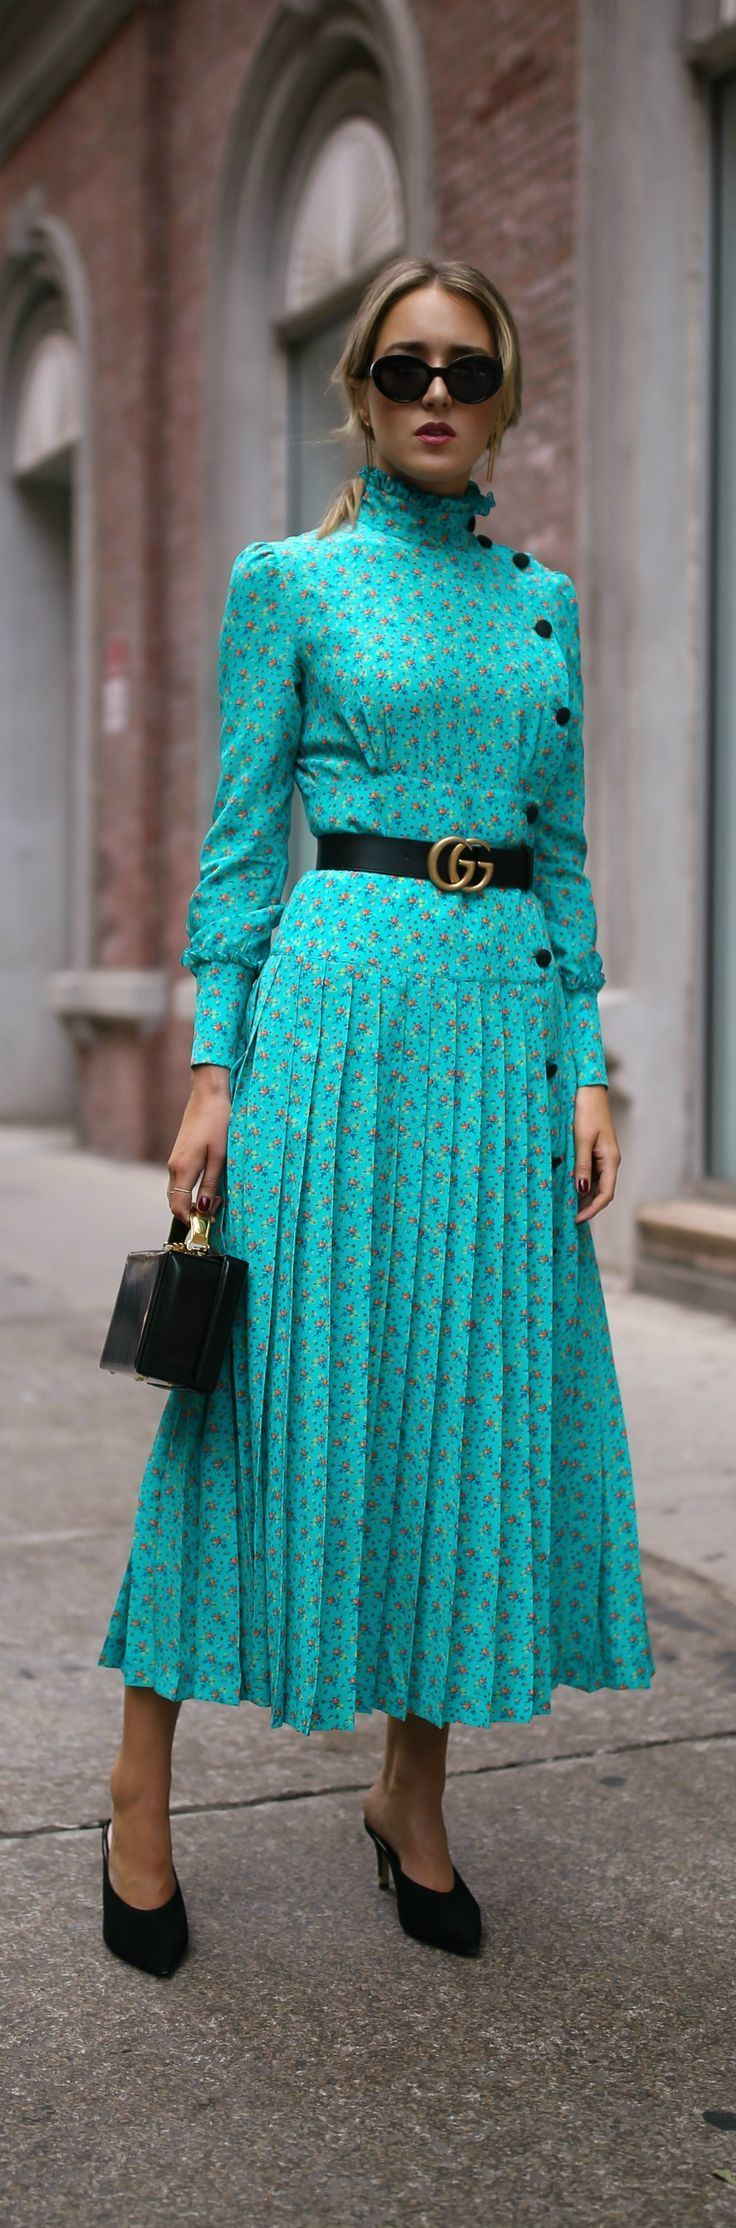 Click for outfit details! // Turquoise floral victorian pleated maxi dress, black slide pumps, small black box bag, leather belt, black sunglasses {Alessandra Rich, Mark Cross, Gucci, New York Fashion Week, NYFW}